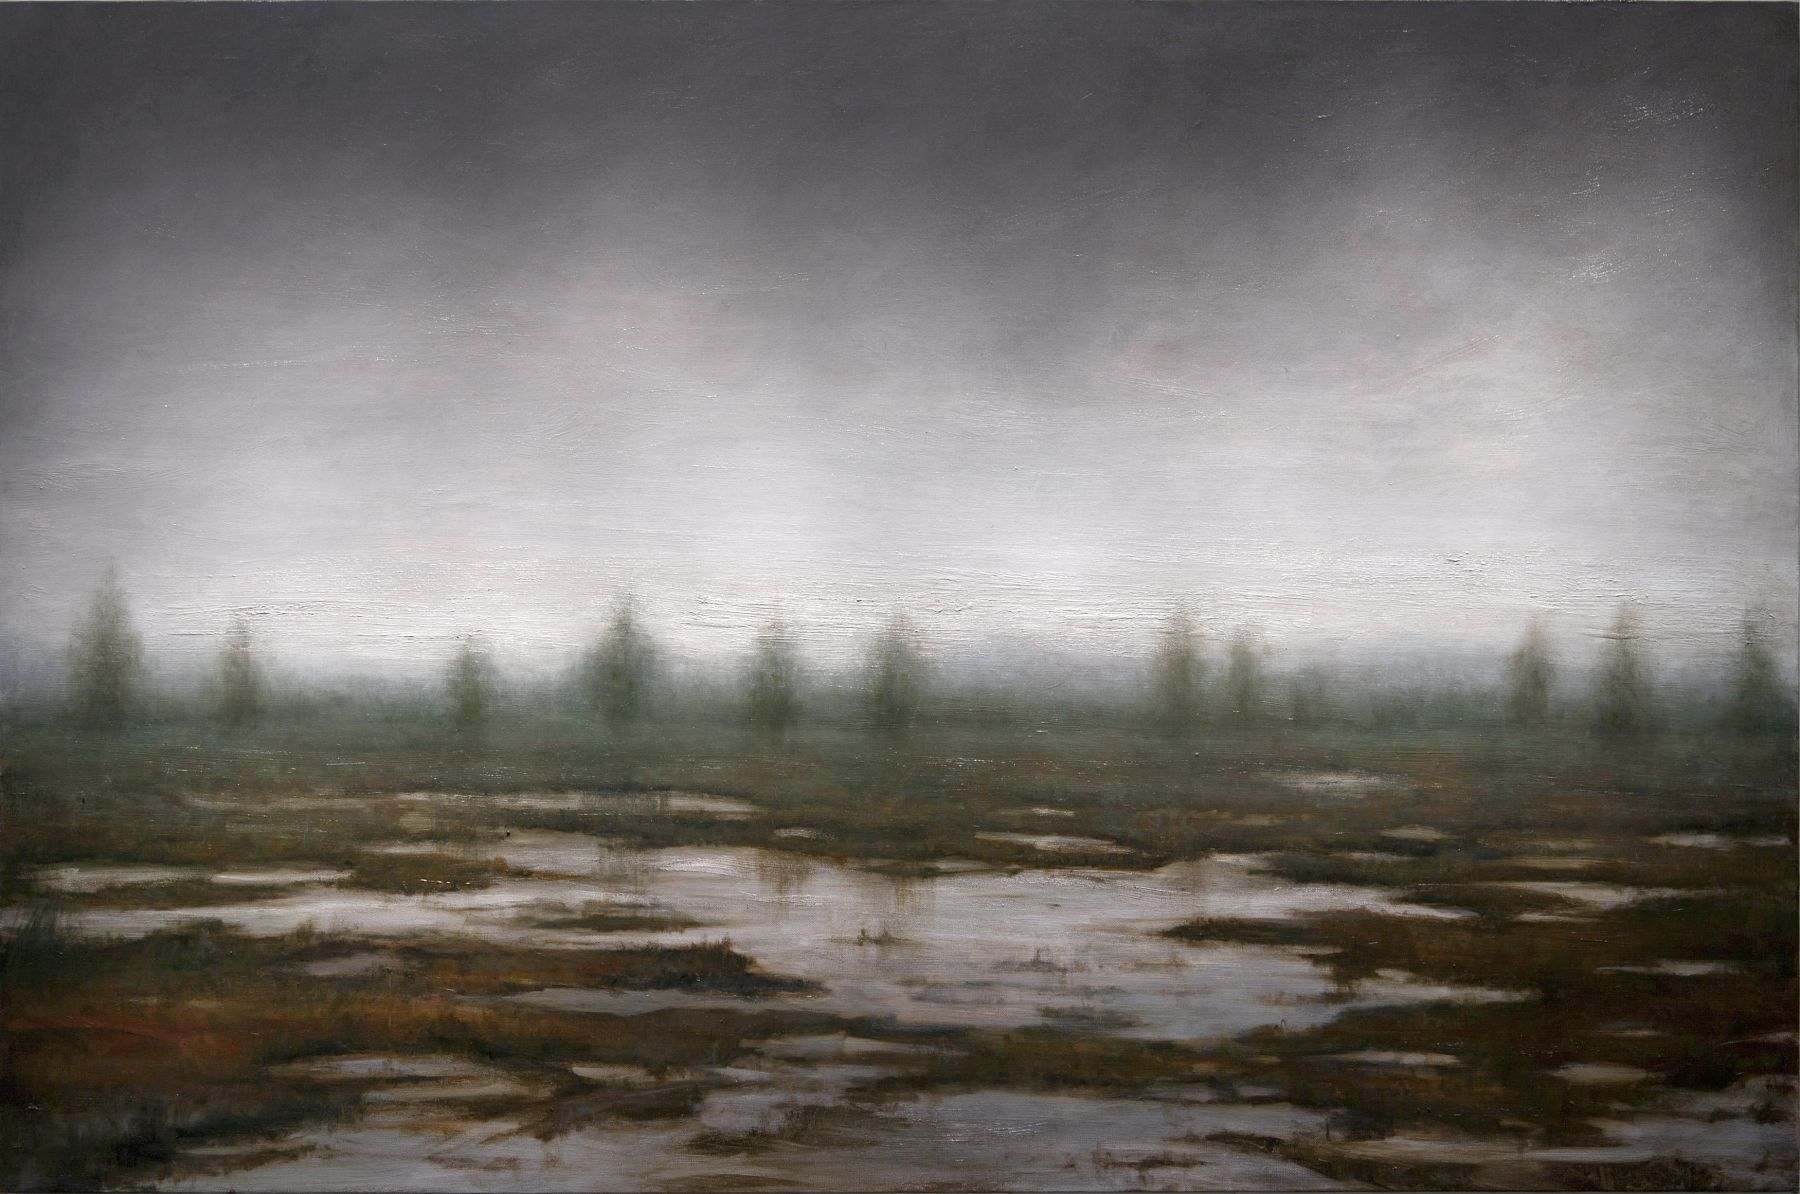 alyssa monks, Africa, 2015, oil on linen, 54 x 82 inches